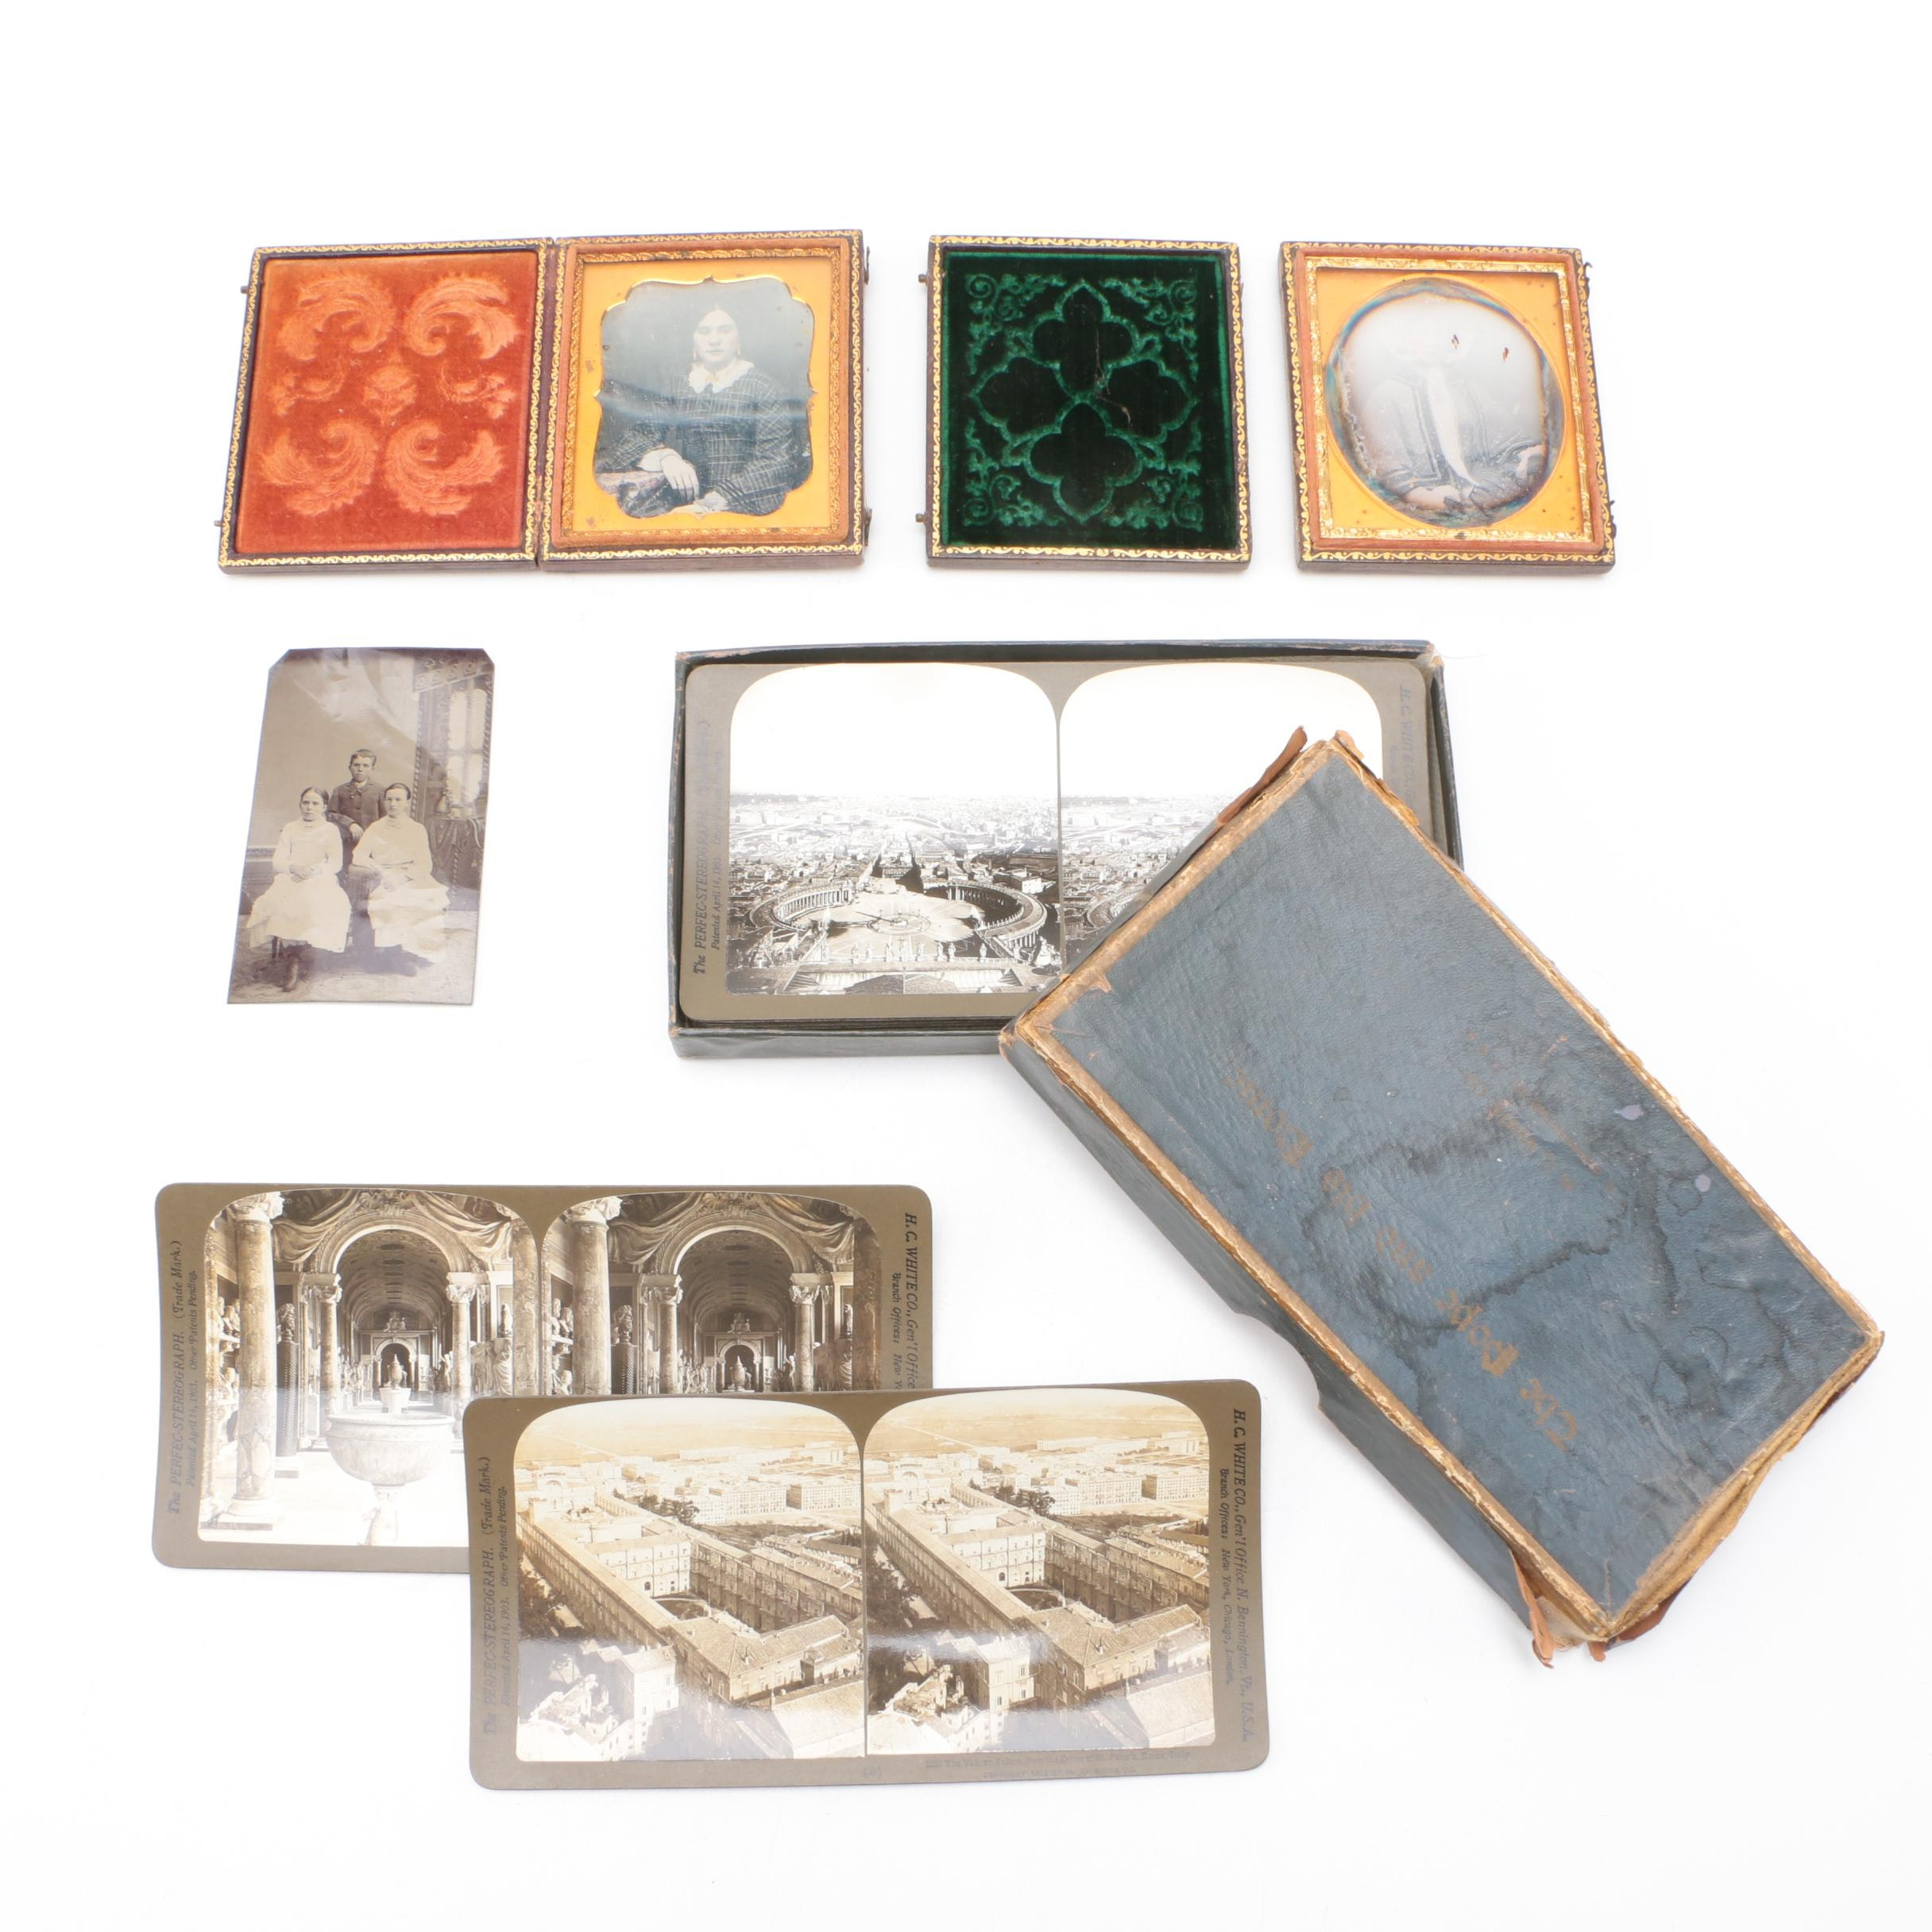 Wooden Storage Boxes with Vintage Photographs